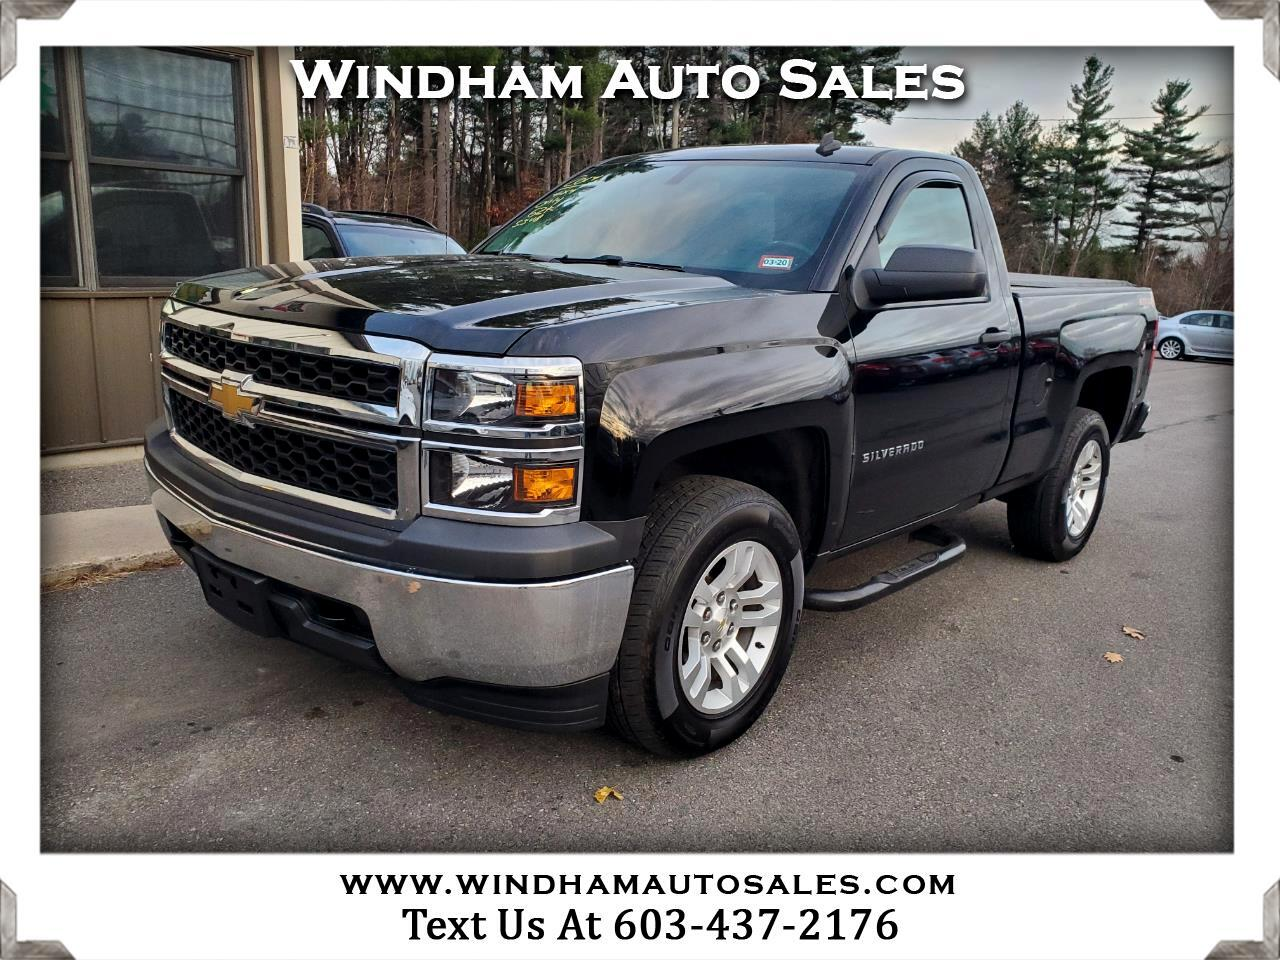 Chevrolet Silverado 1500 Reg. Cab Short Bed 4WD 2014